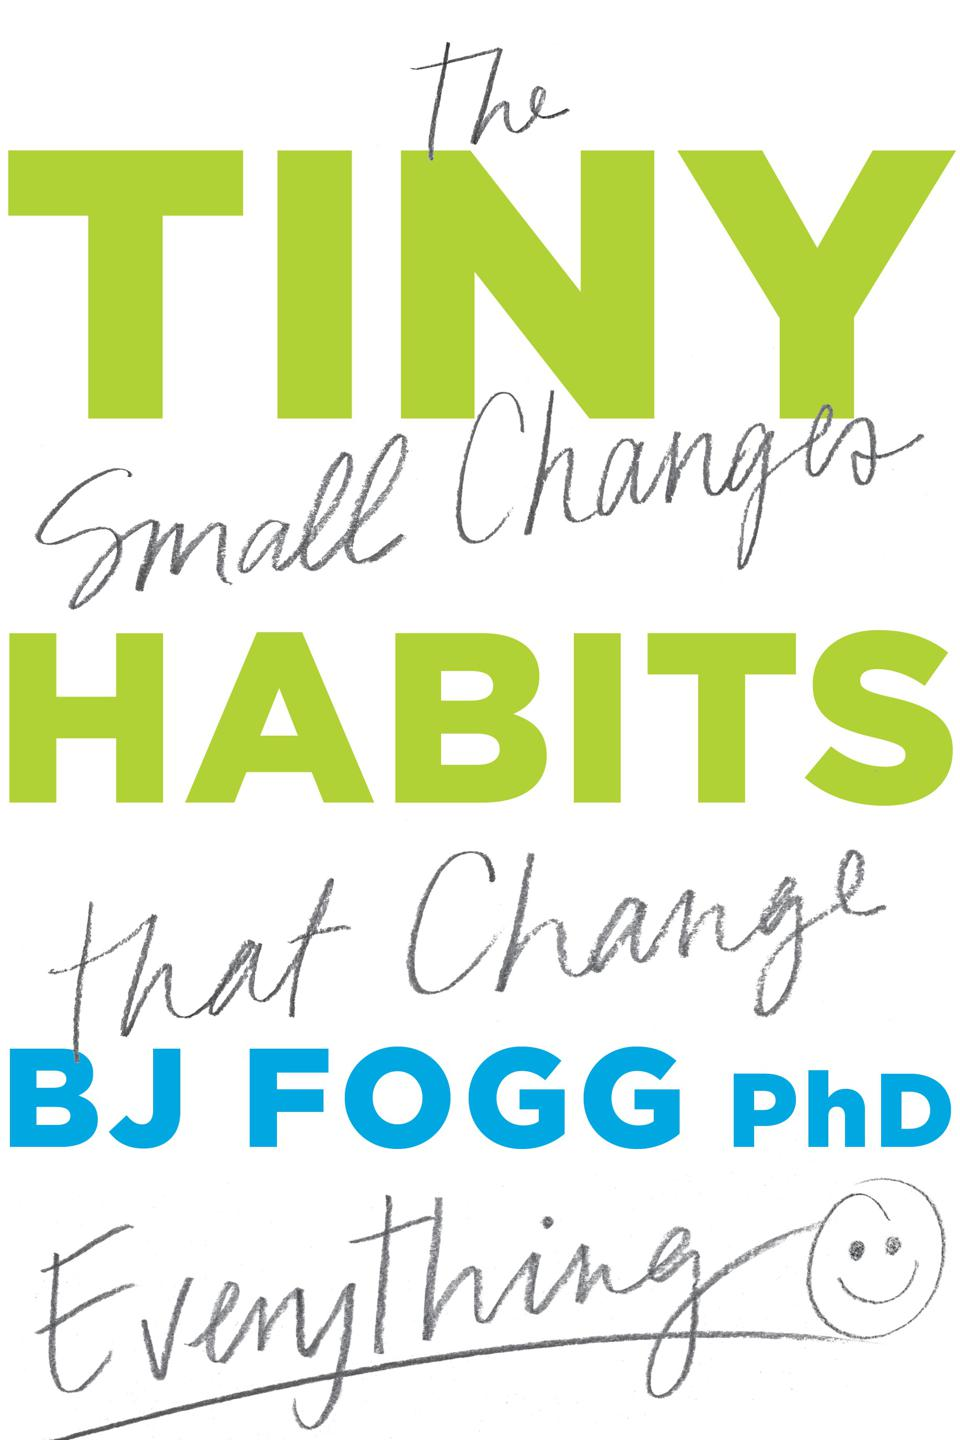 To create big changes, start with tiny habits.